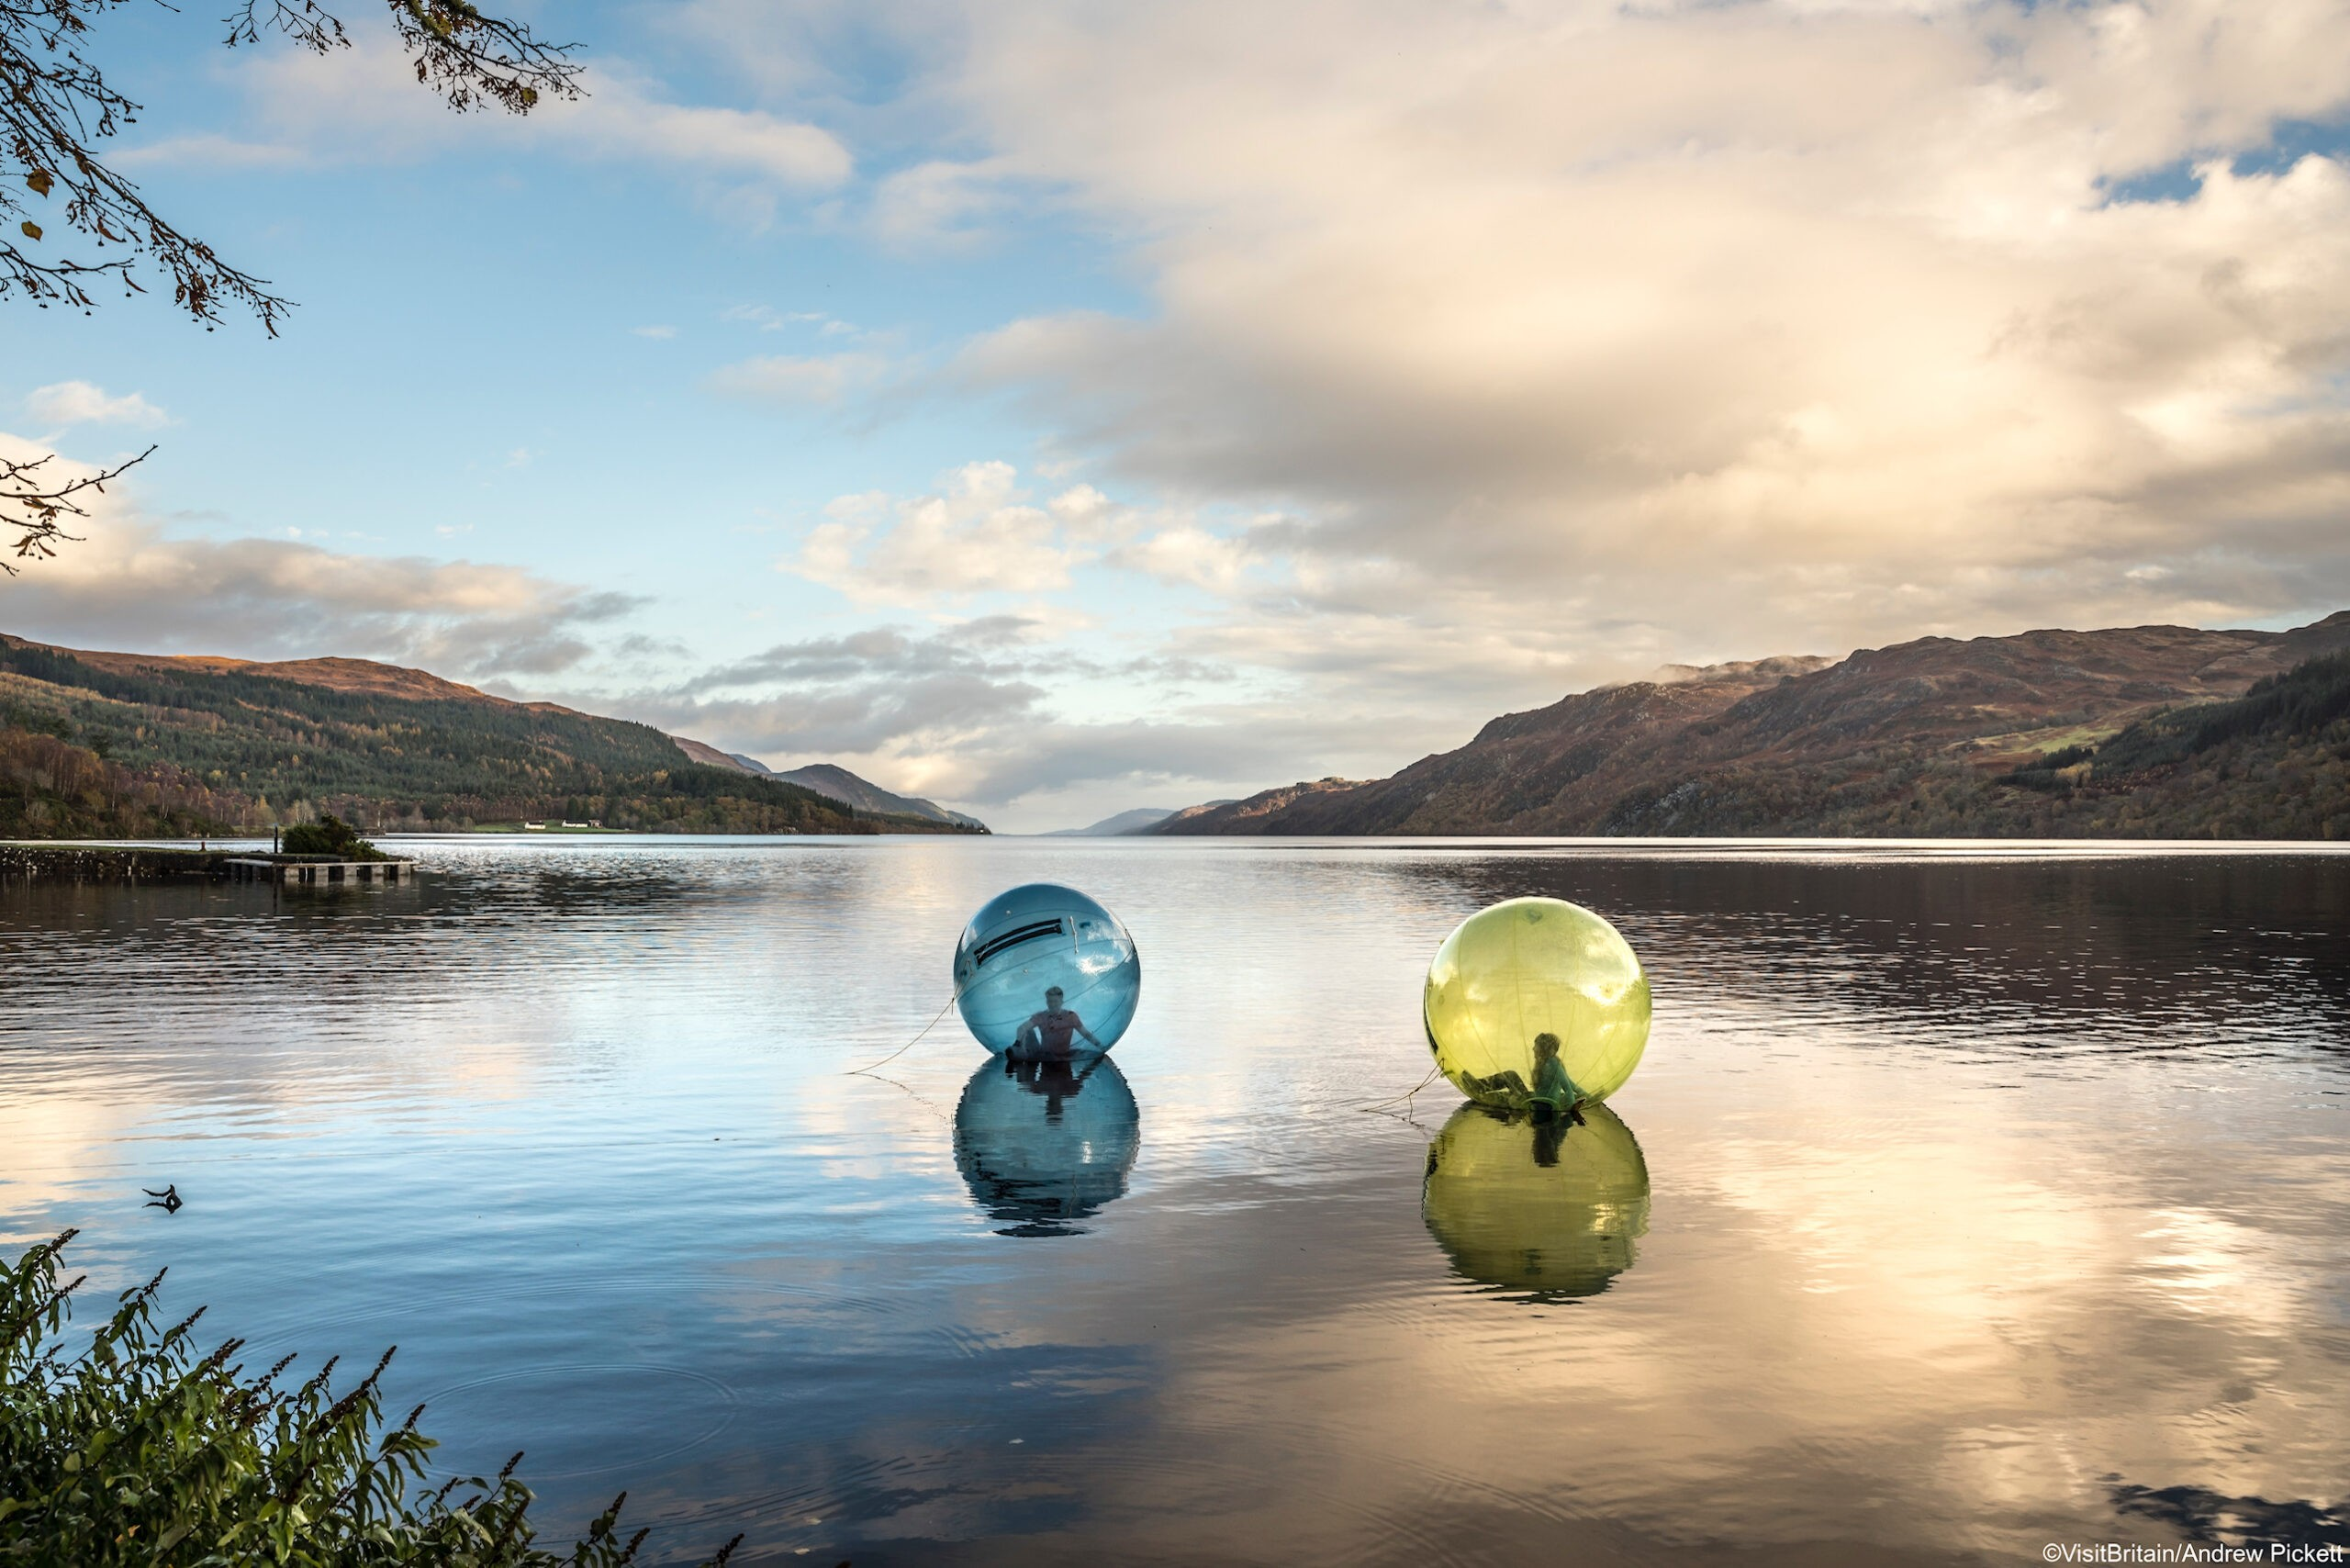 Two people zorbing, sitting in large plastic clear globes floating on the surface of Loch Ness, Highlands, Scotland. TIF file available upon request - please contact info@visitbritainimages.com